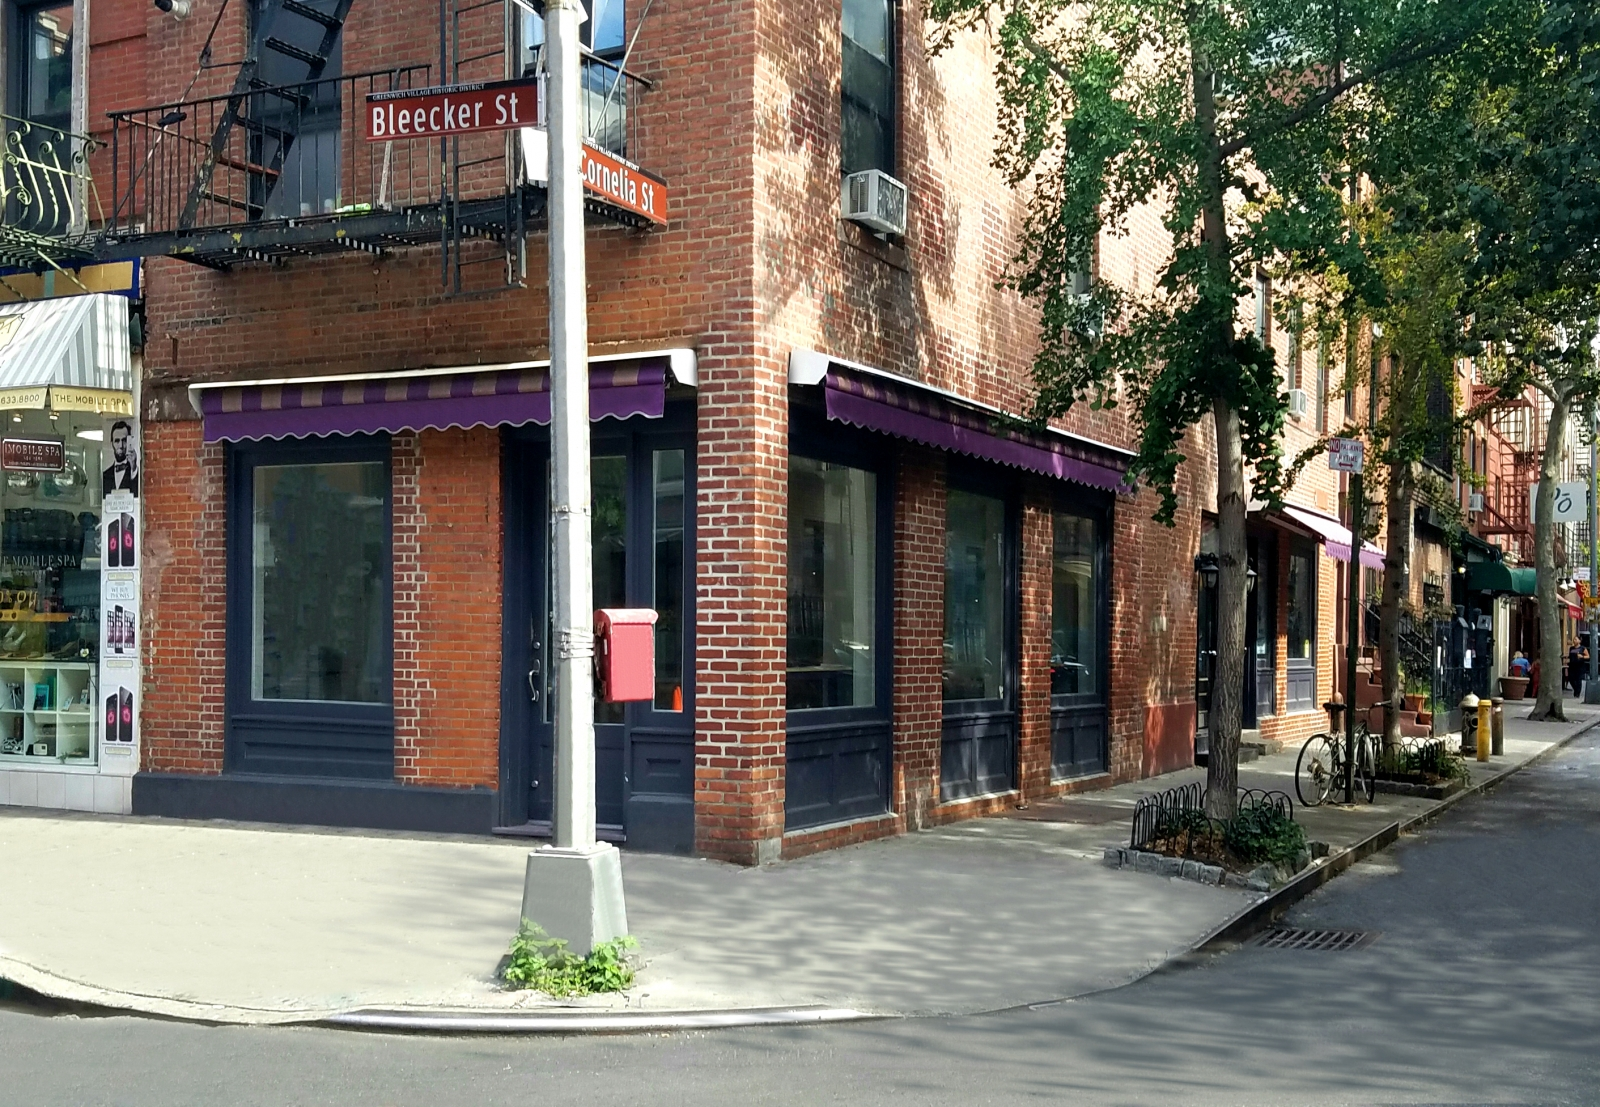 257 Bleecker St, New York, NY 10014, USA